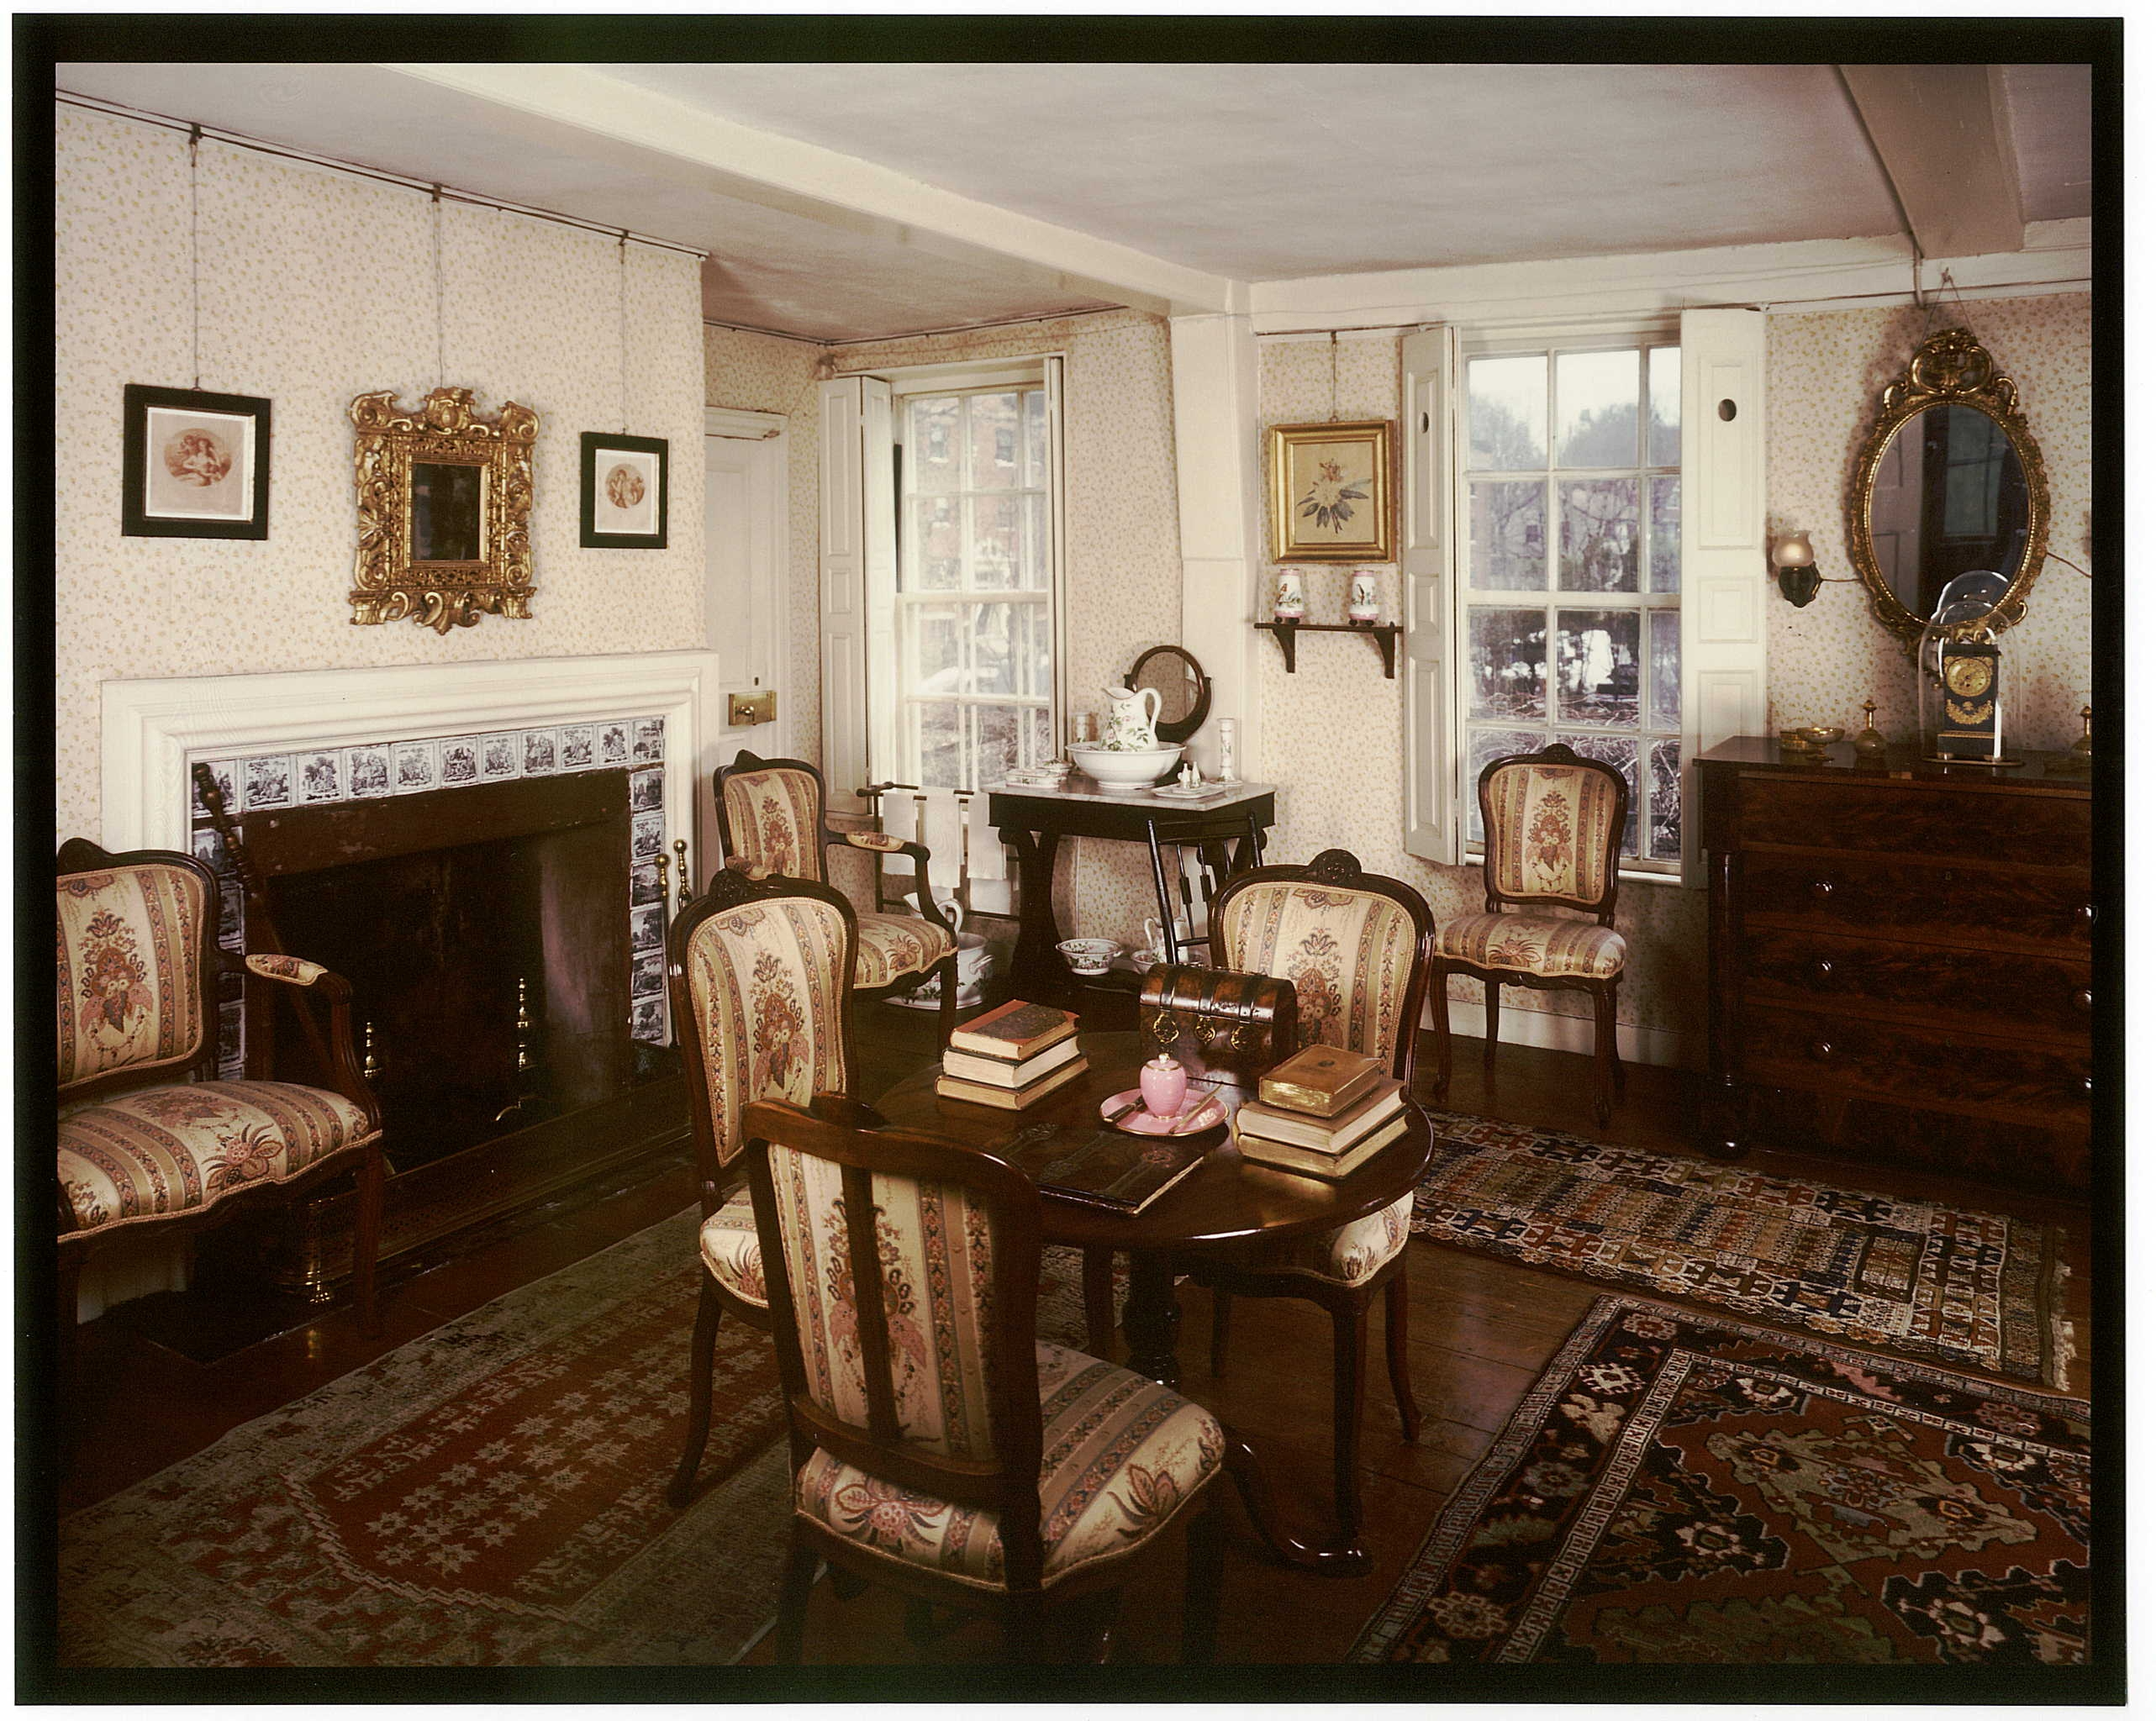 Guest Room Of The Old House, Southeast View